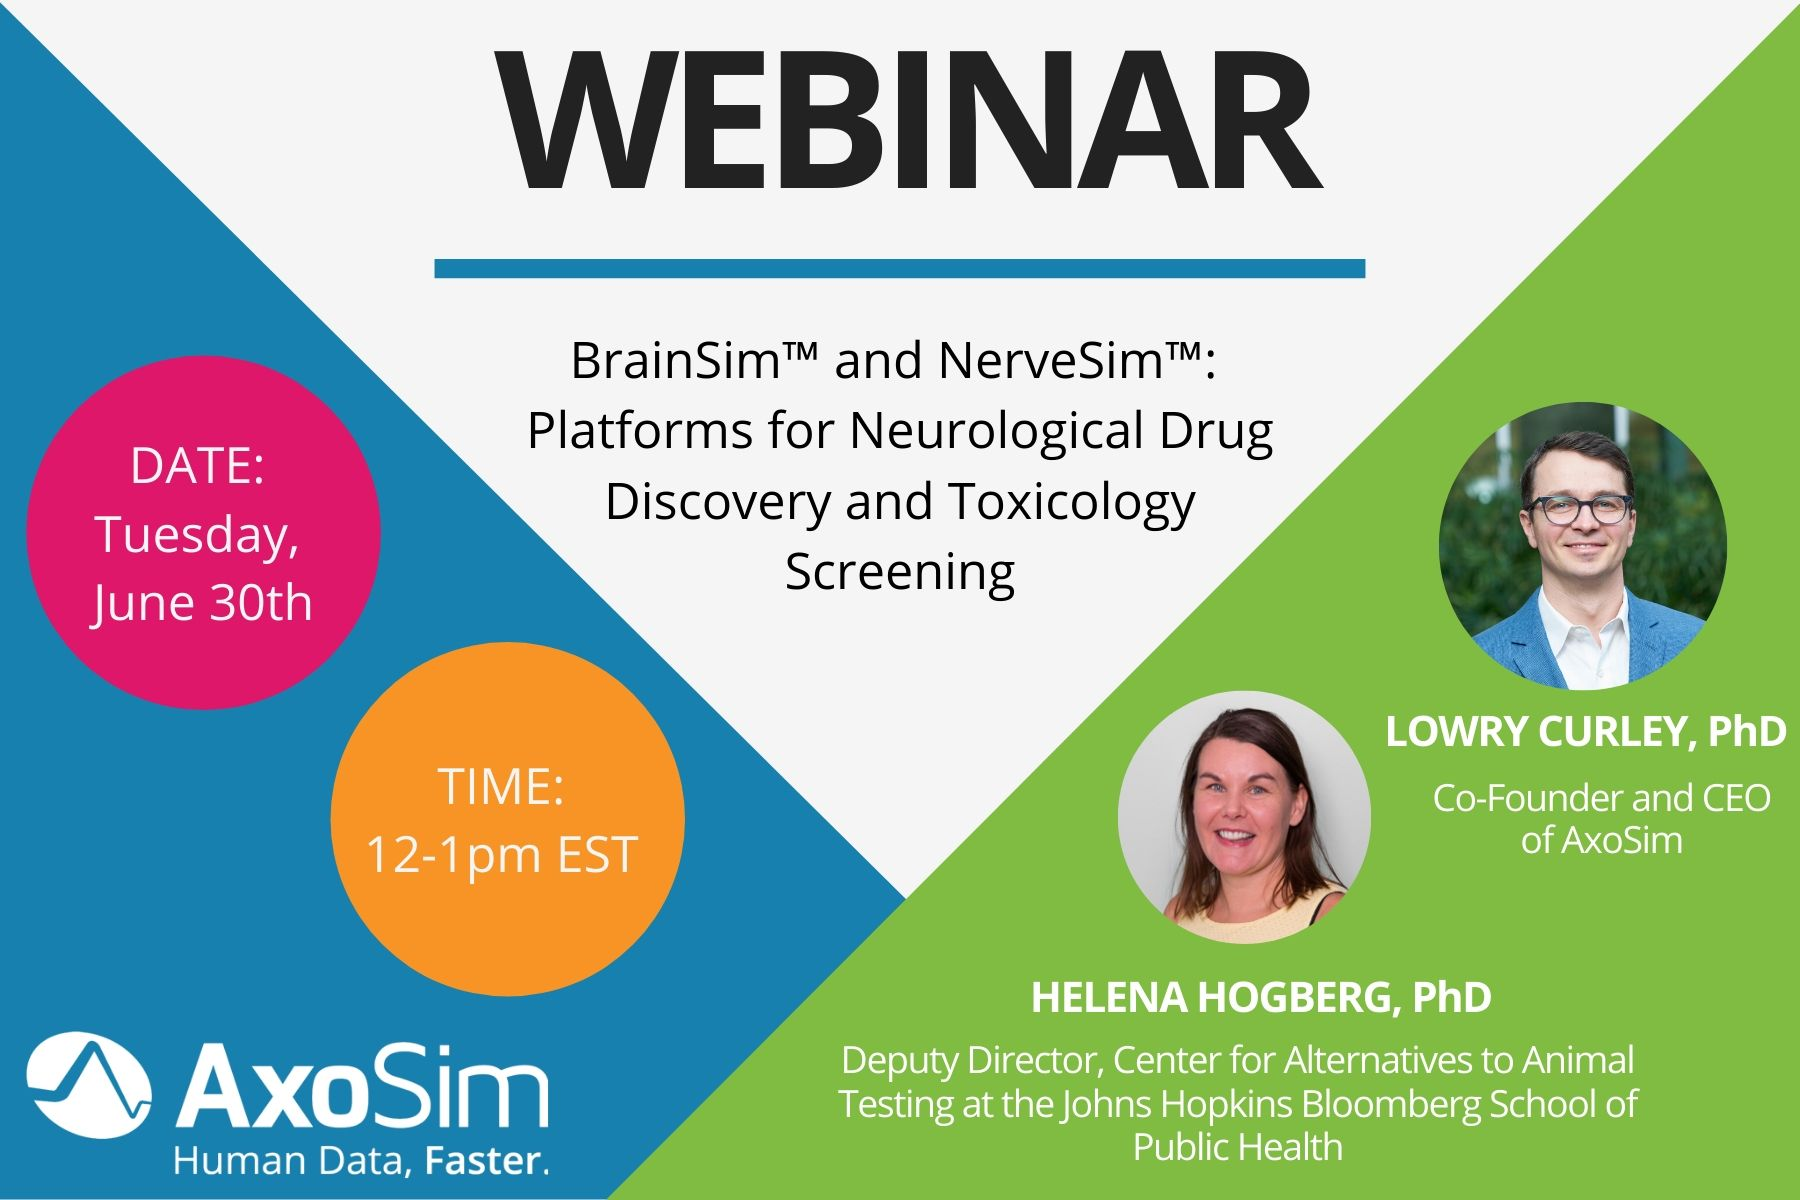 NerveSim™ and BrainSim™: Platforms for Neurological Drug Discovery and Toxicology Featured Image